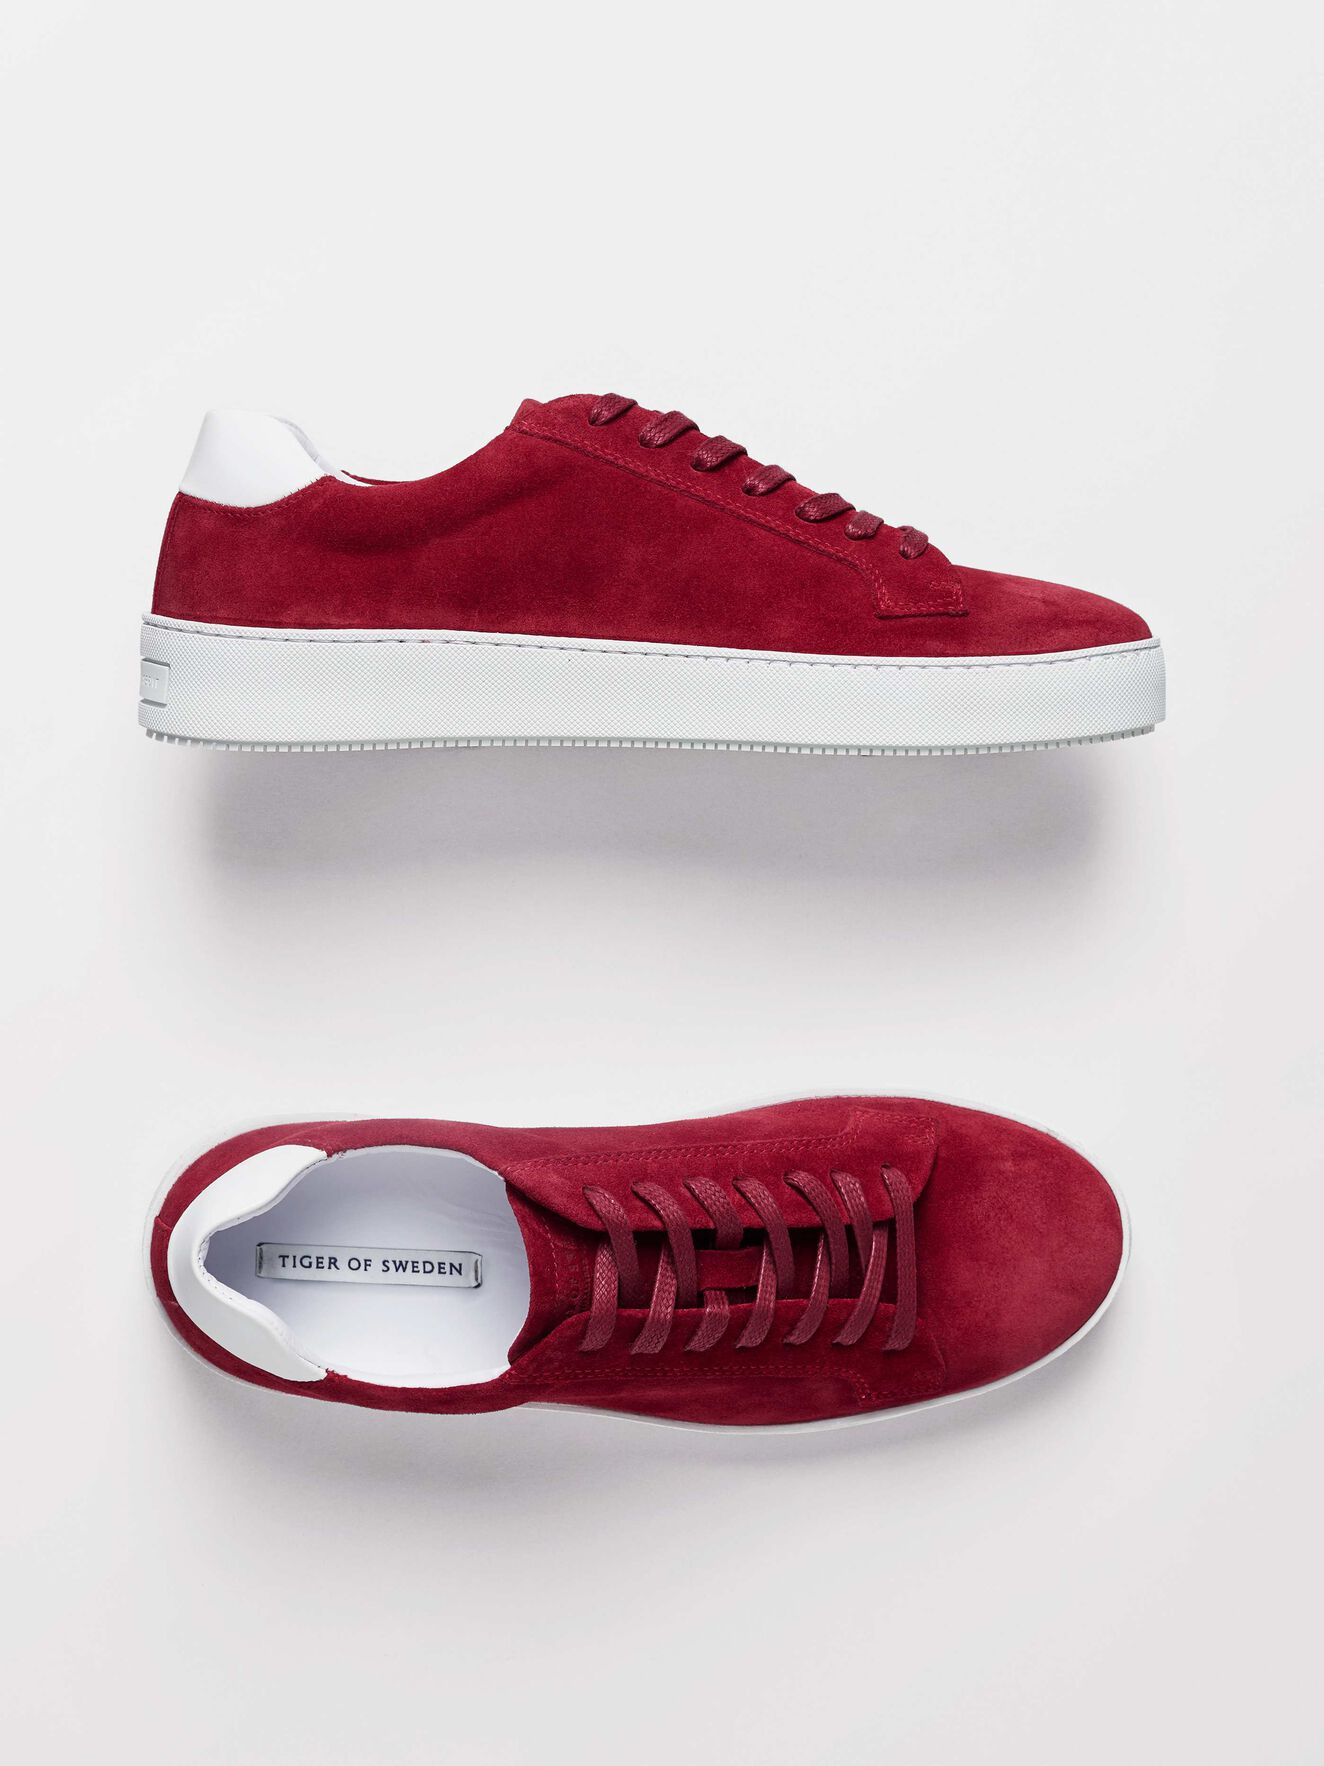 Salasi S Sneakers in Light Red from Tiger of Sweden